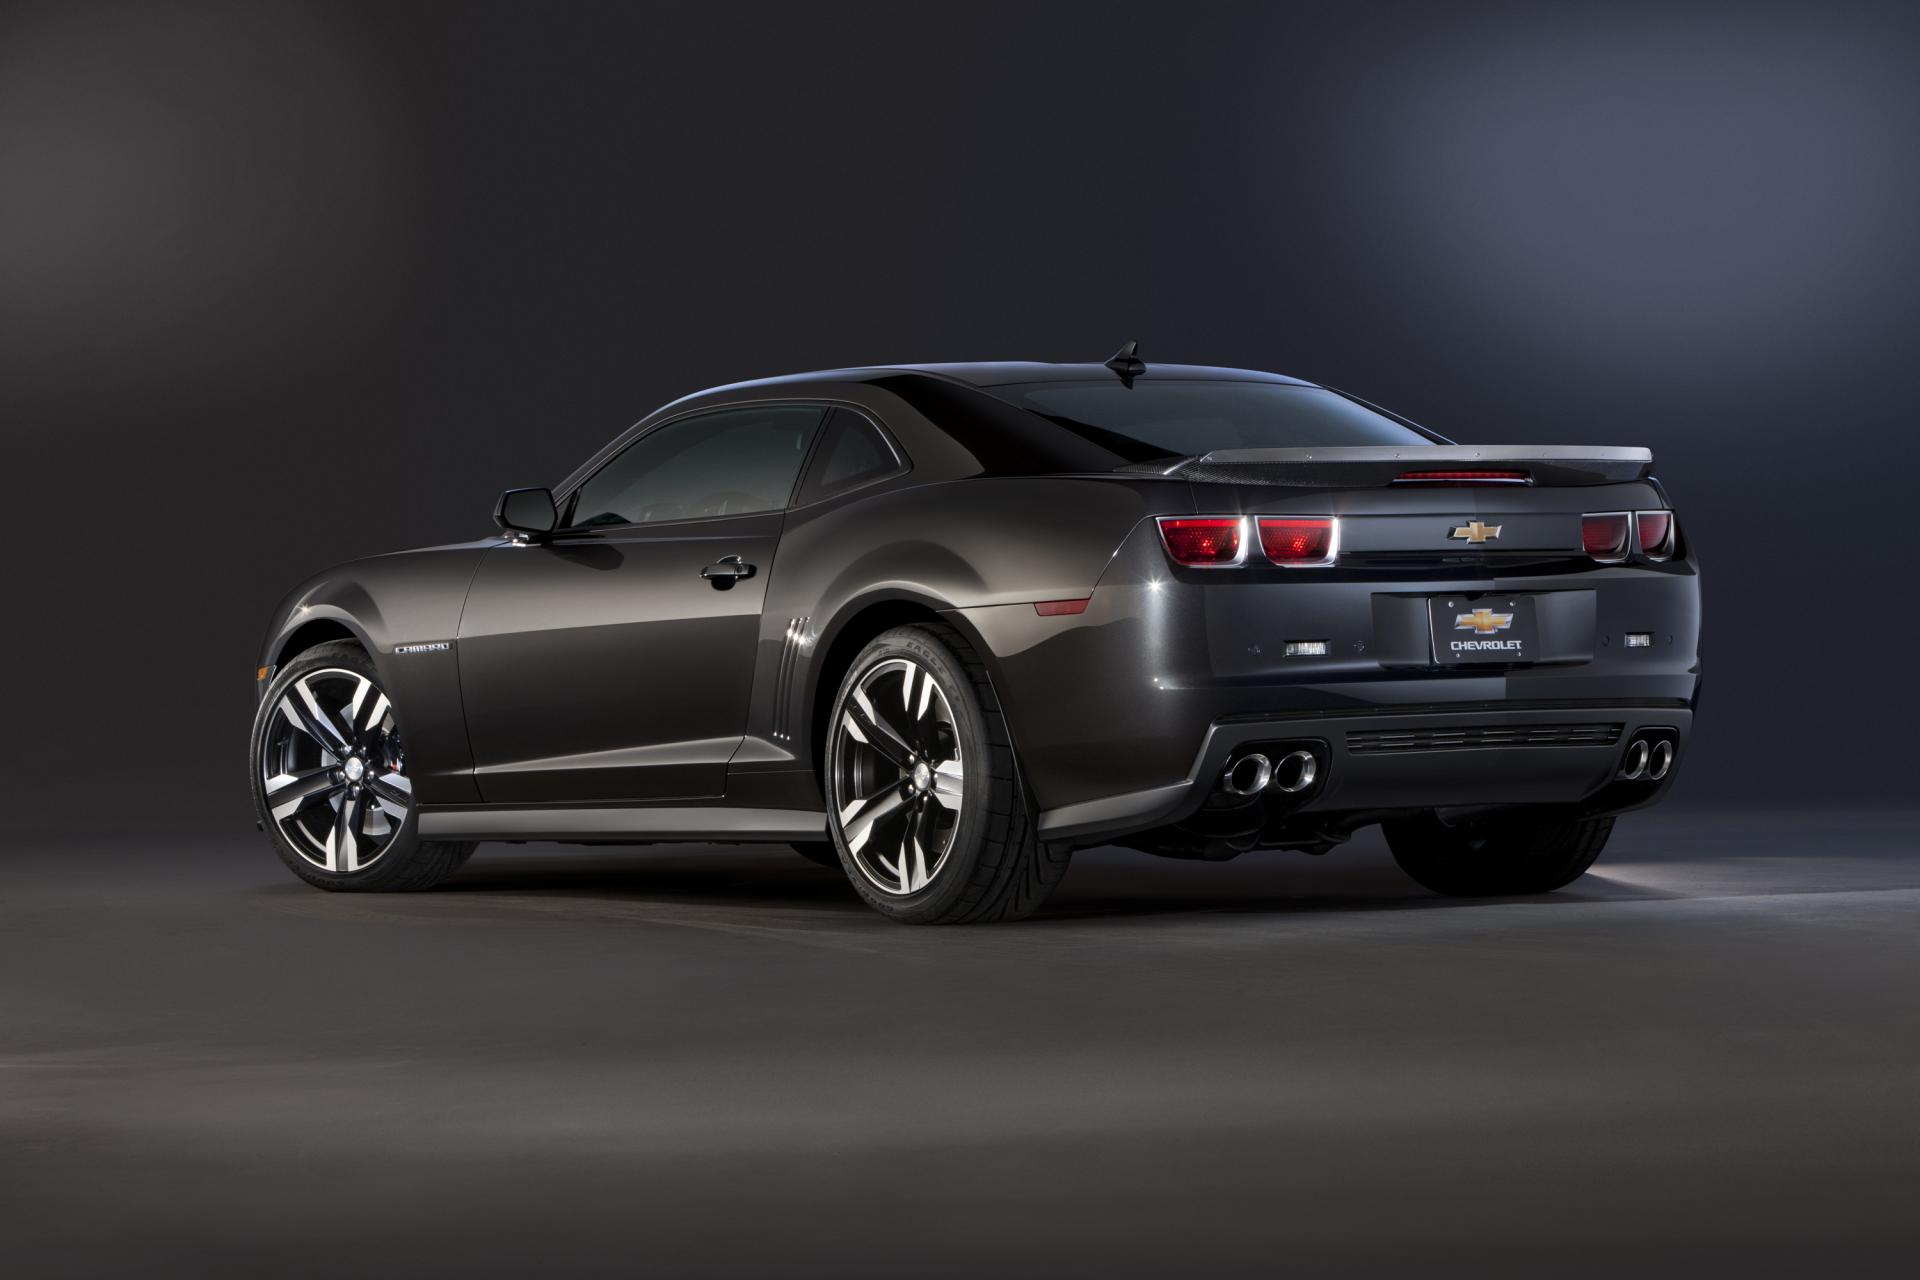 2012 Chevrolet Camaro ZL1 Carbon Concept Pictures News Research